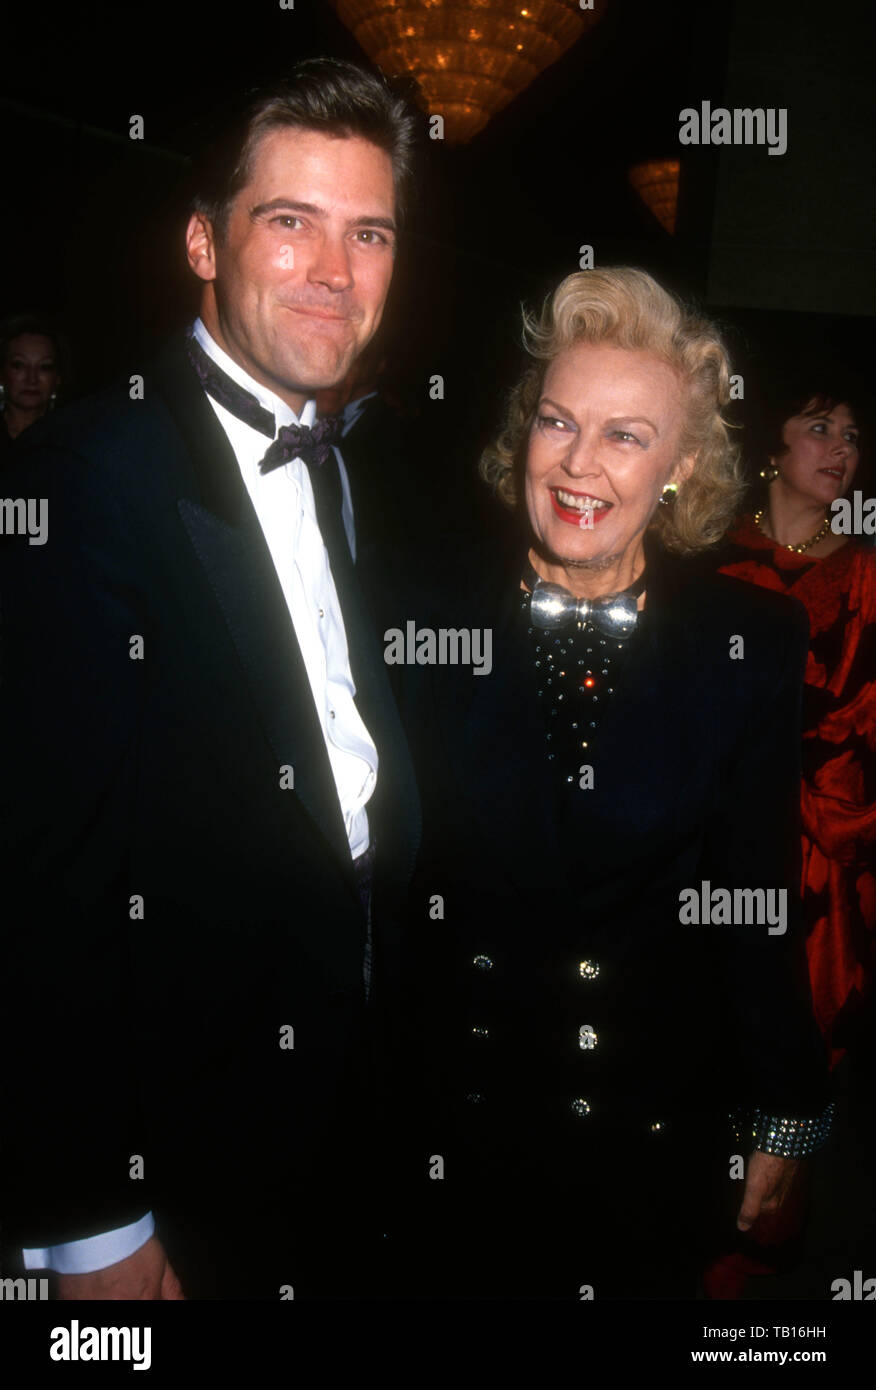 Beverly Hills, California, USA 9th May 1994  Publicist Brad Cafarelli and actress June Haver attend Society of Singers Awards honoring Peggy Lee with Lifetime Achievement Award on May 9, 1994 at the Beverly Hilton Hotel in Beverly Hills, California, USA. Photo by Barry King/Alamy Stock Photo - Stock Image